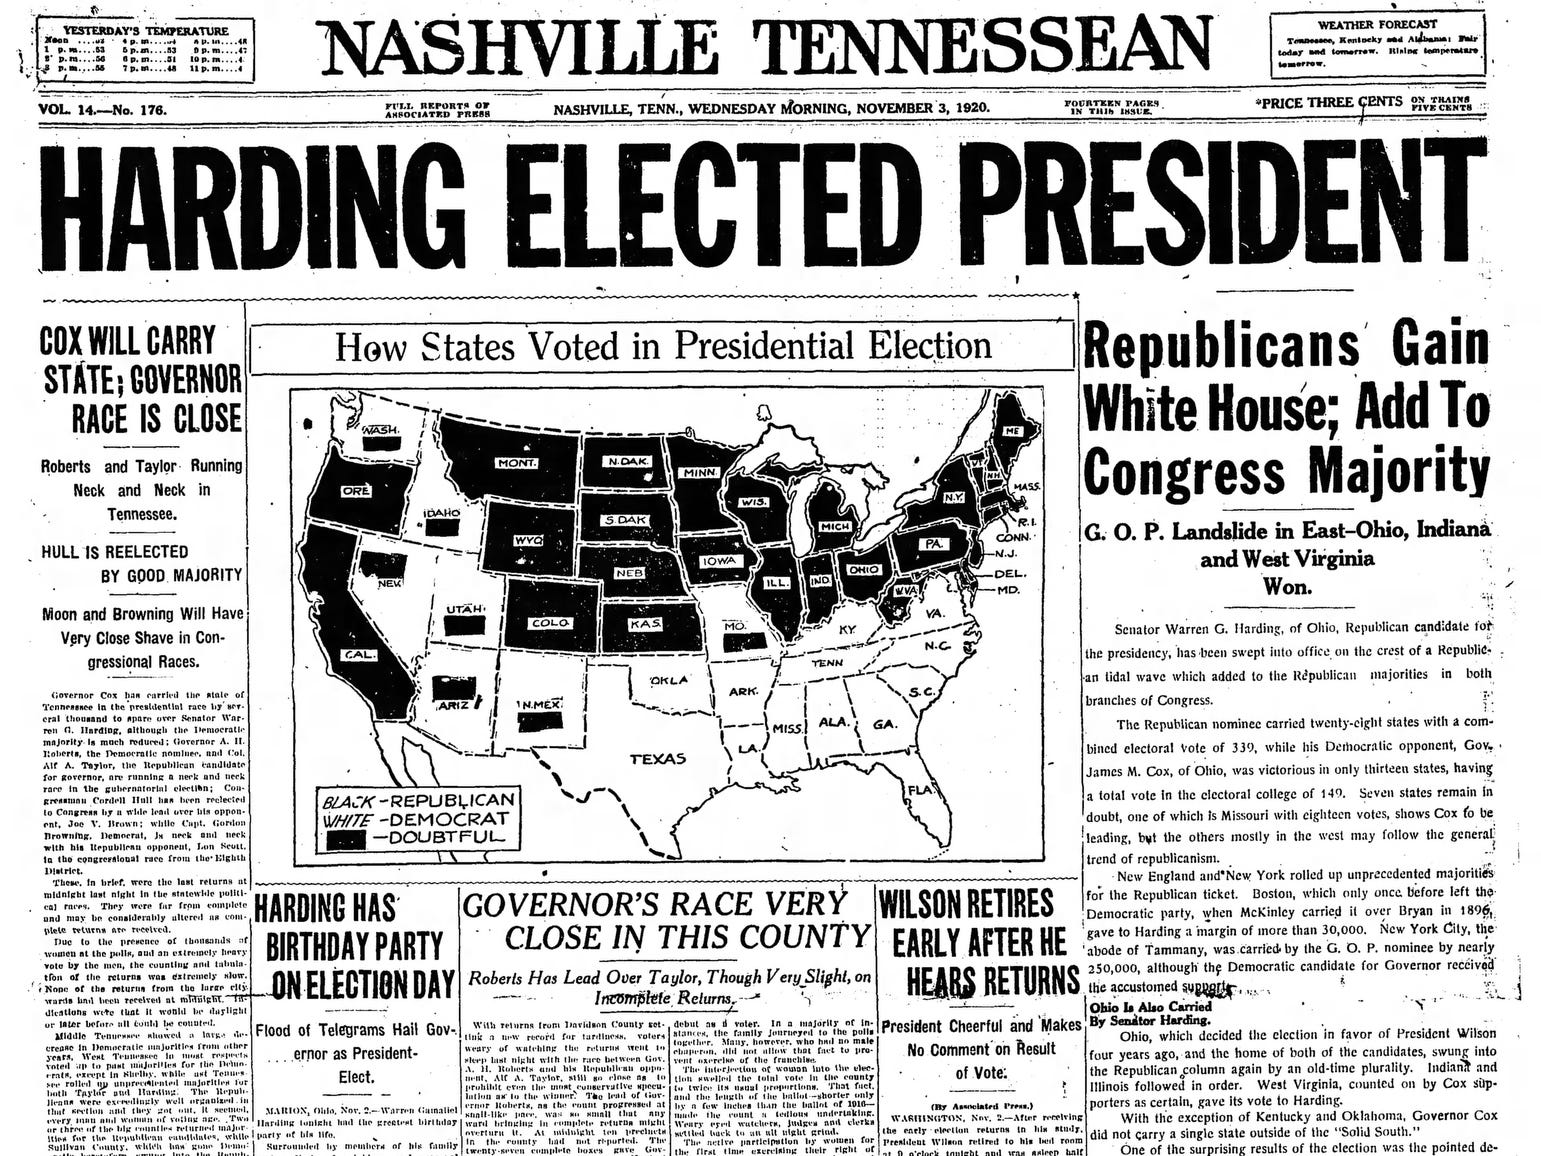 The front page of the Nov. 3, 1920 of The Tennessean which Warren G. Harding won the presidential election.